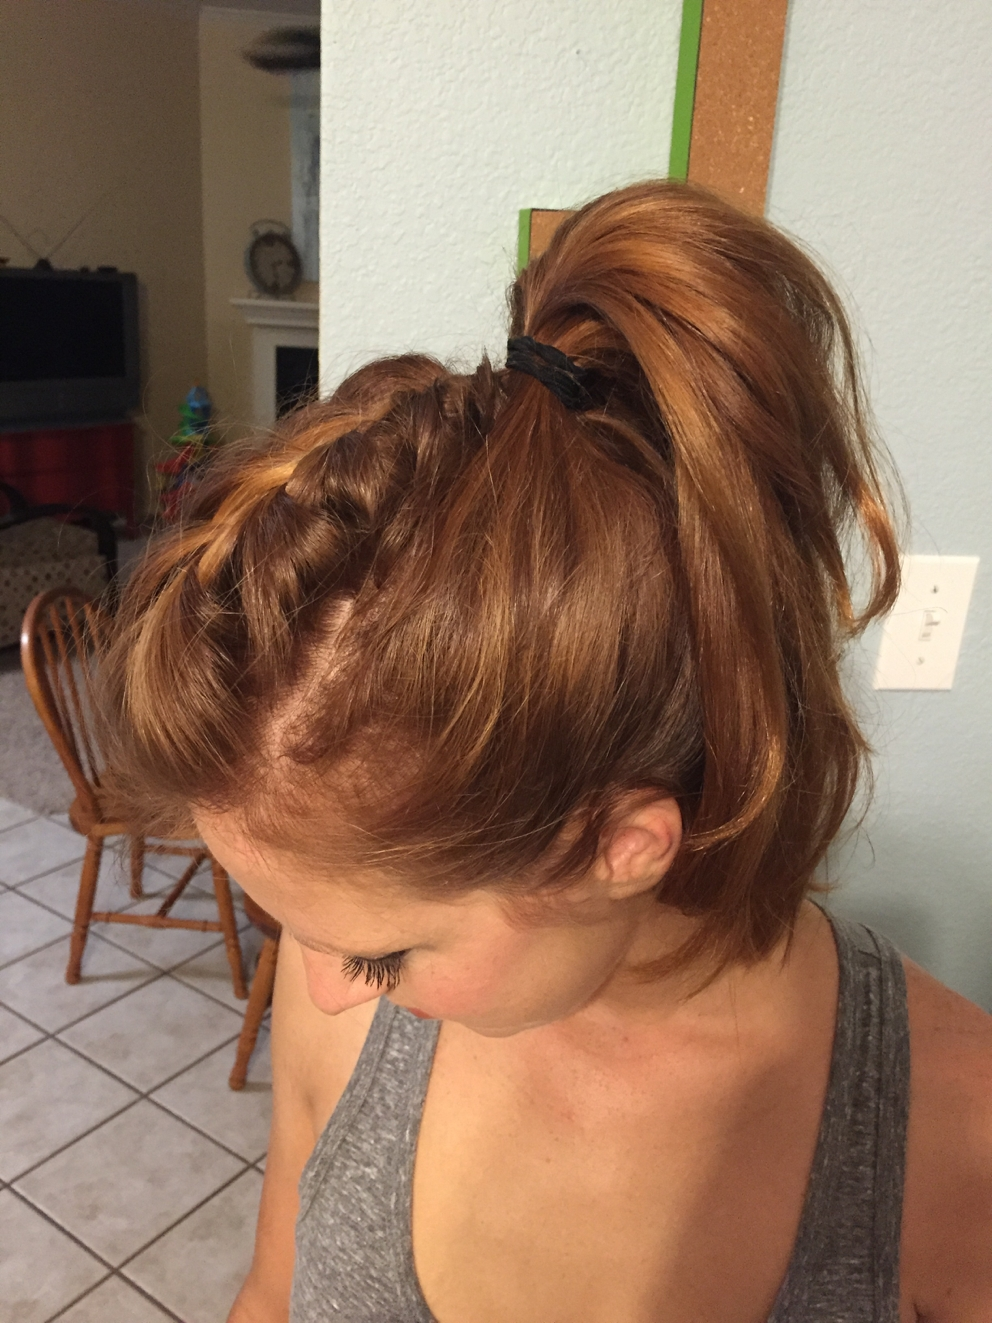 How To Get The Perfect Mohawk Ponytail – Perky Pony Regarding Latest Punky Ponytail Hairstyles (View 8 of 20)